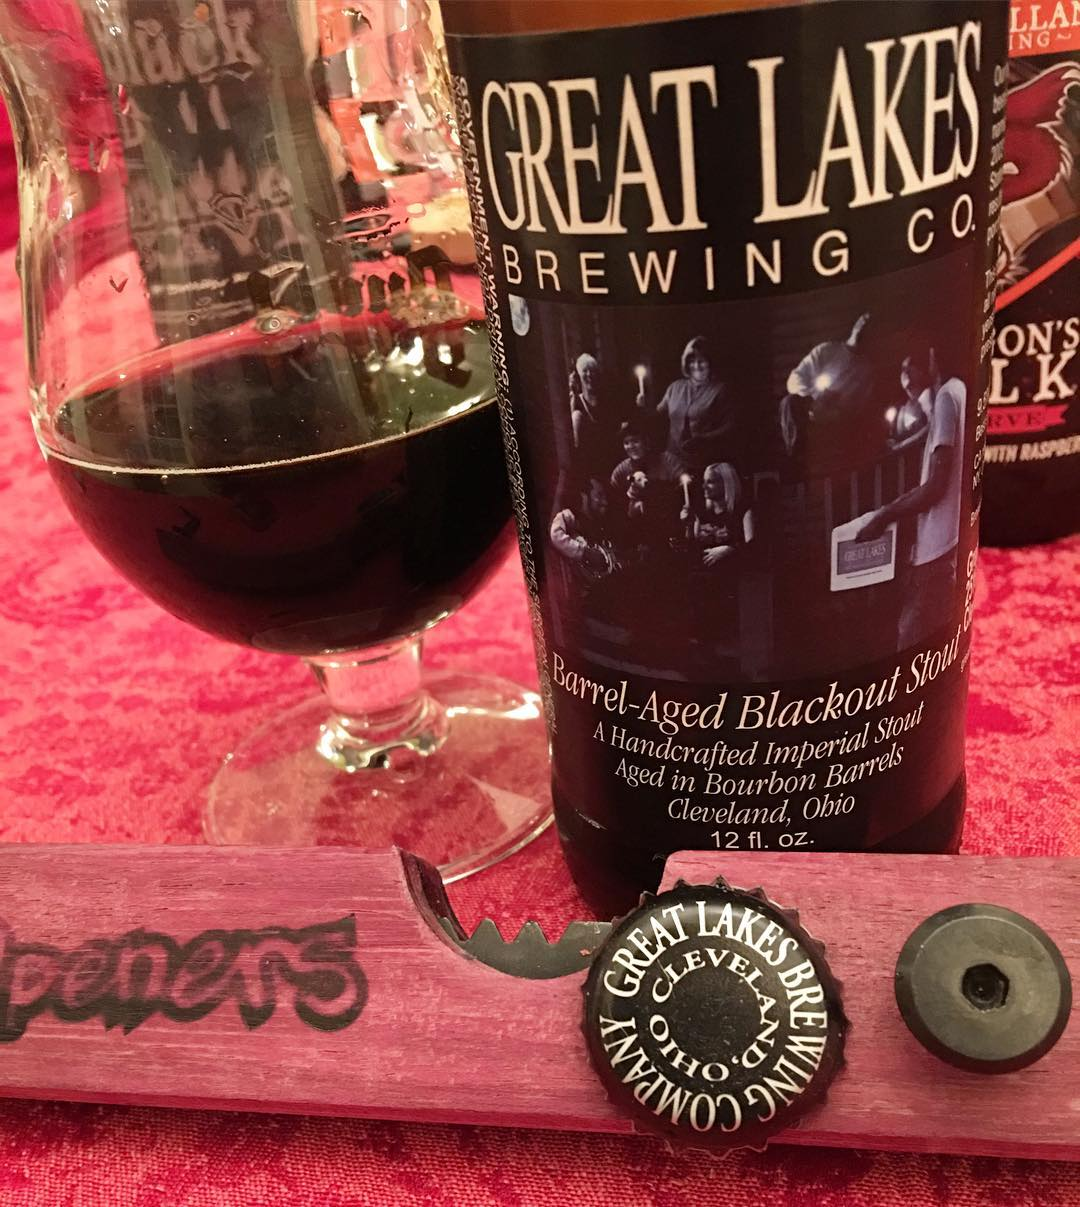 @glbc_cleveland 2015 Barrel Aged Blackout Stout - lots going on here. This is definitely full of flavor.